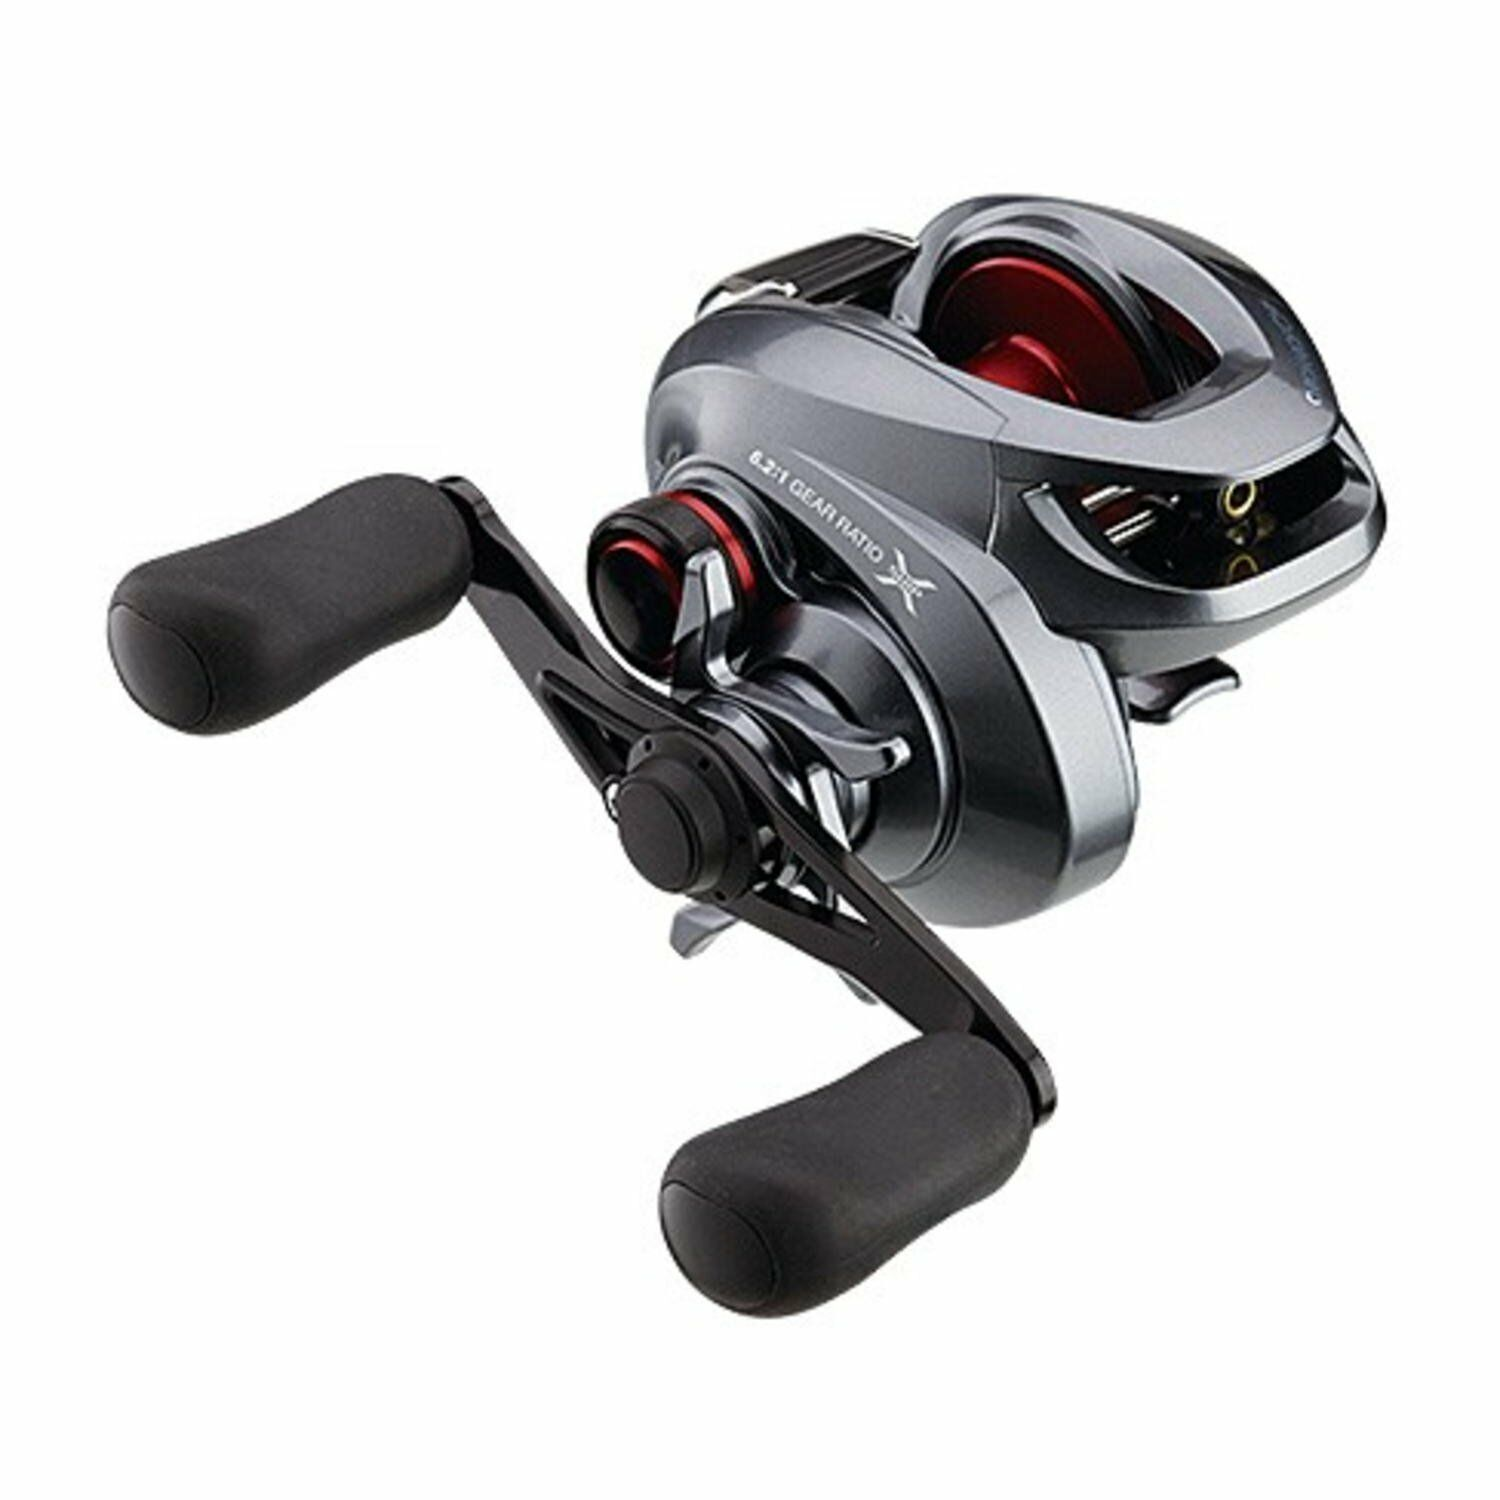 SHIMANO BRAND REEL 14 CHRONACH CI4 + 150 FISHING RIGHT BRAND SHIMANO NEW F/S 1ee359